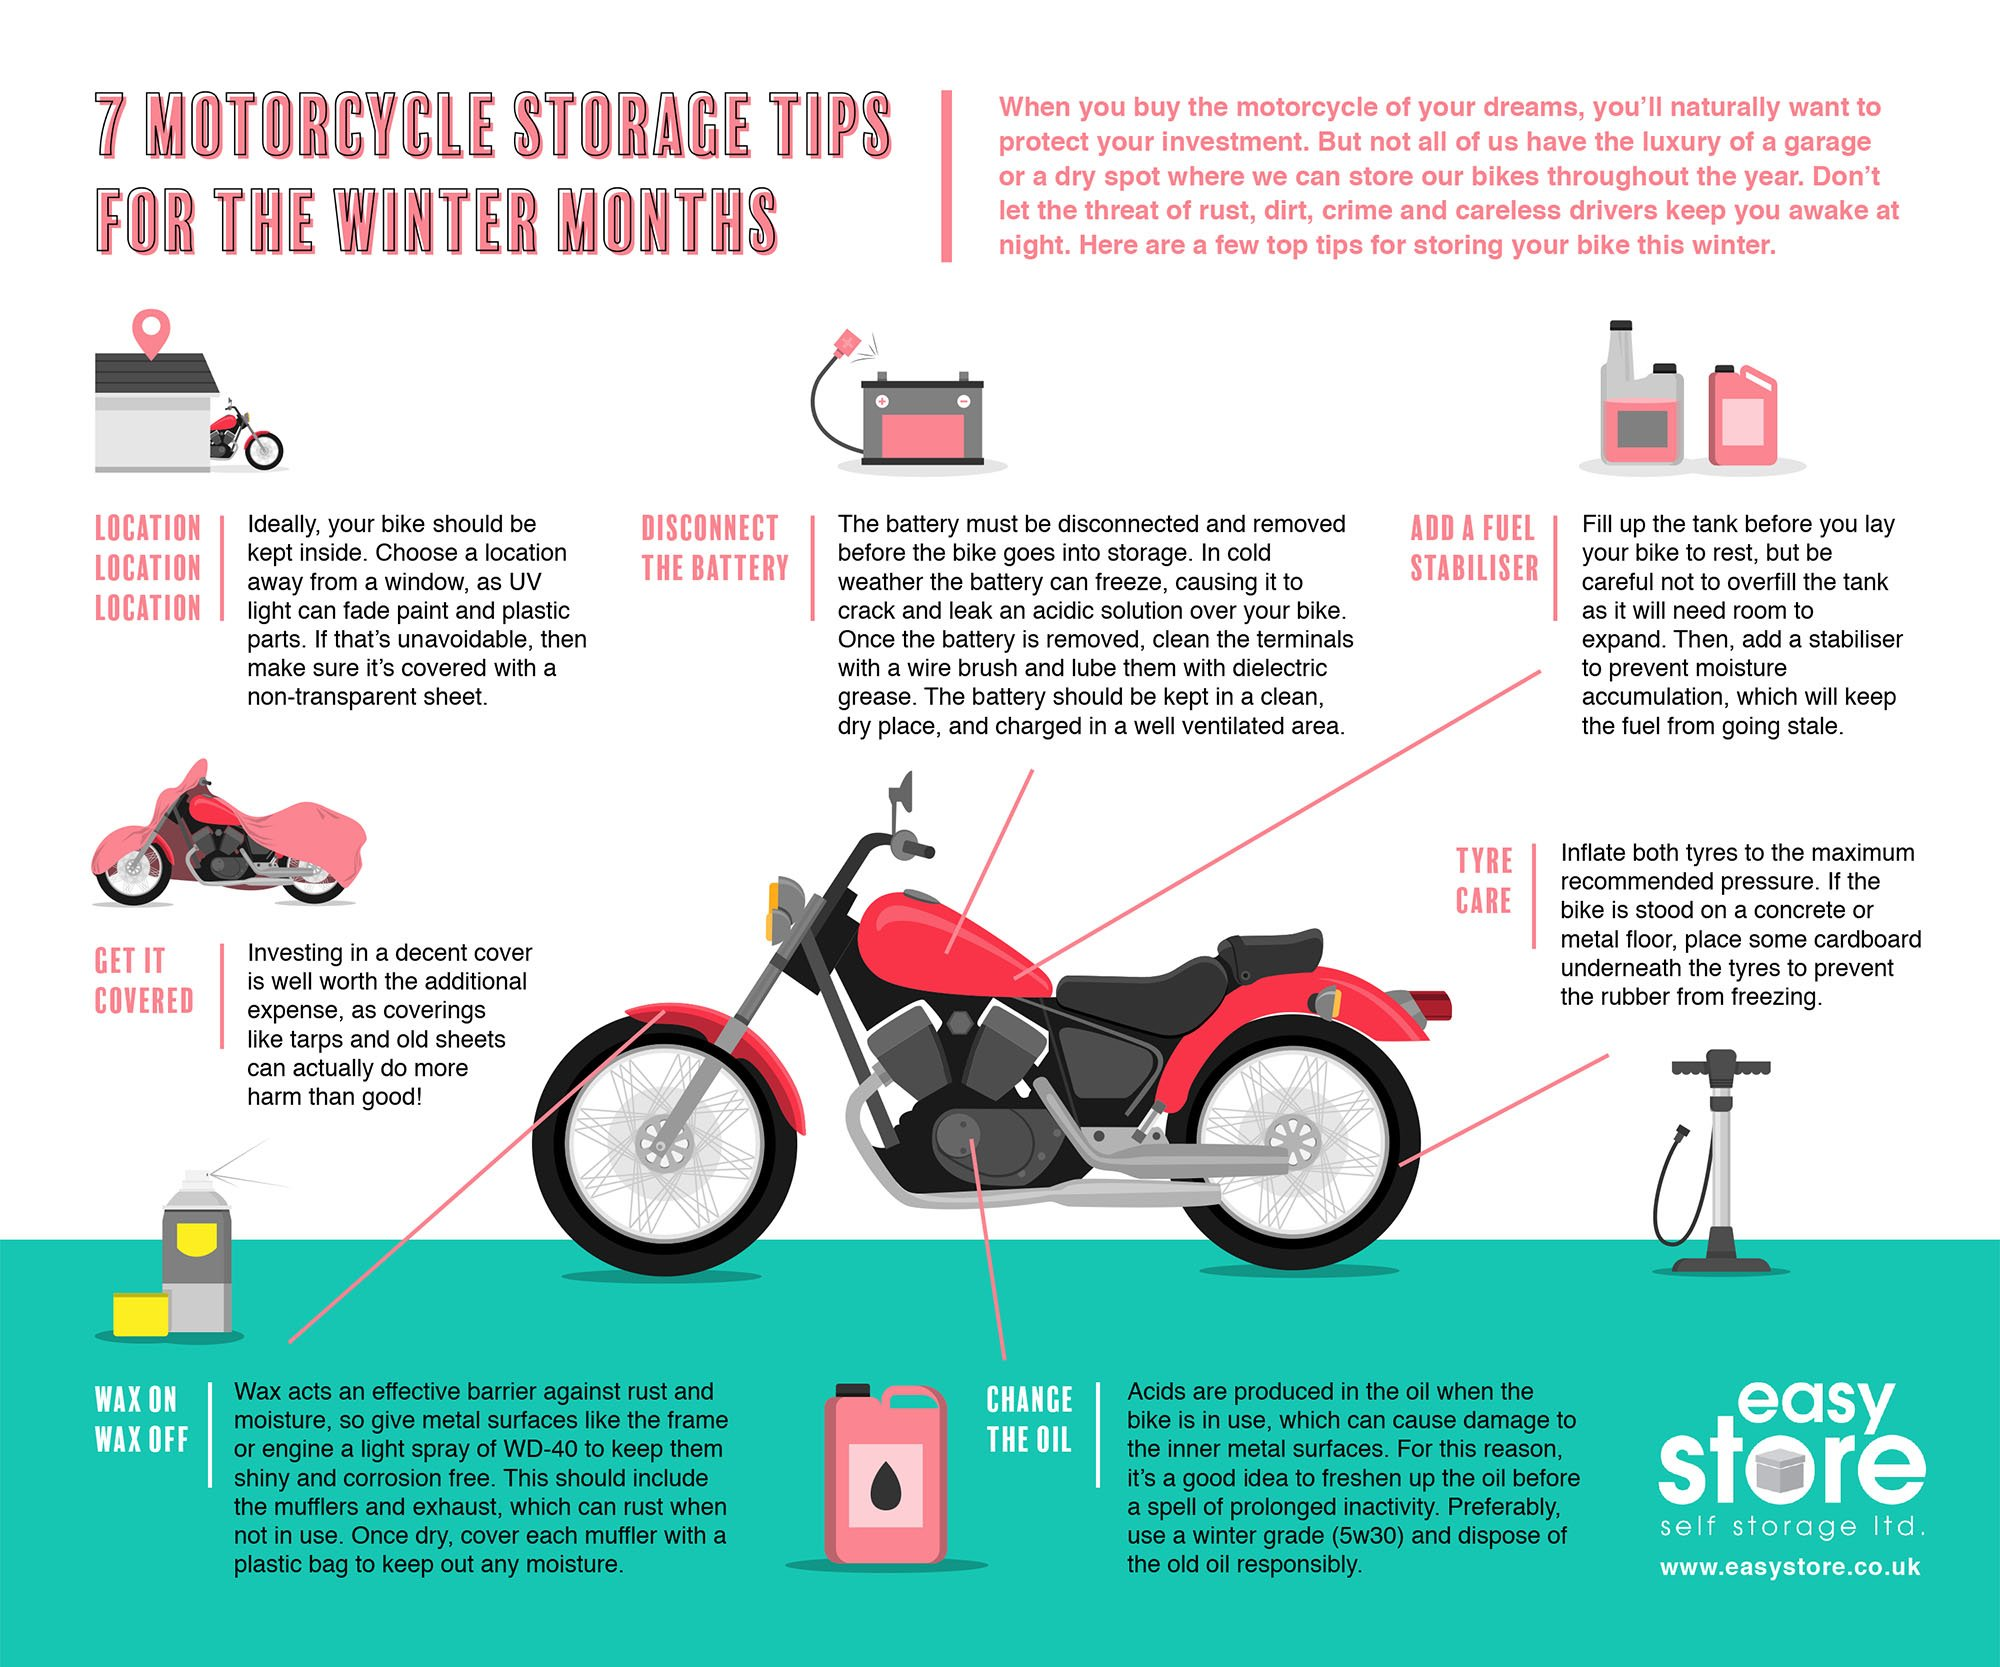 motorbike-storage-tips-during-winter-months-infographic-plaza